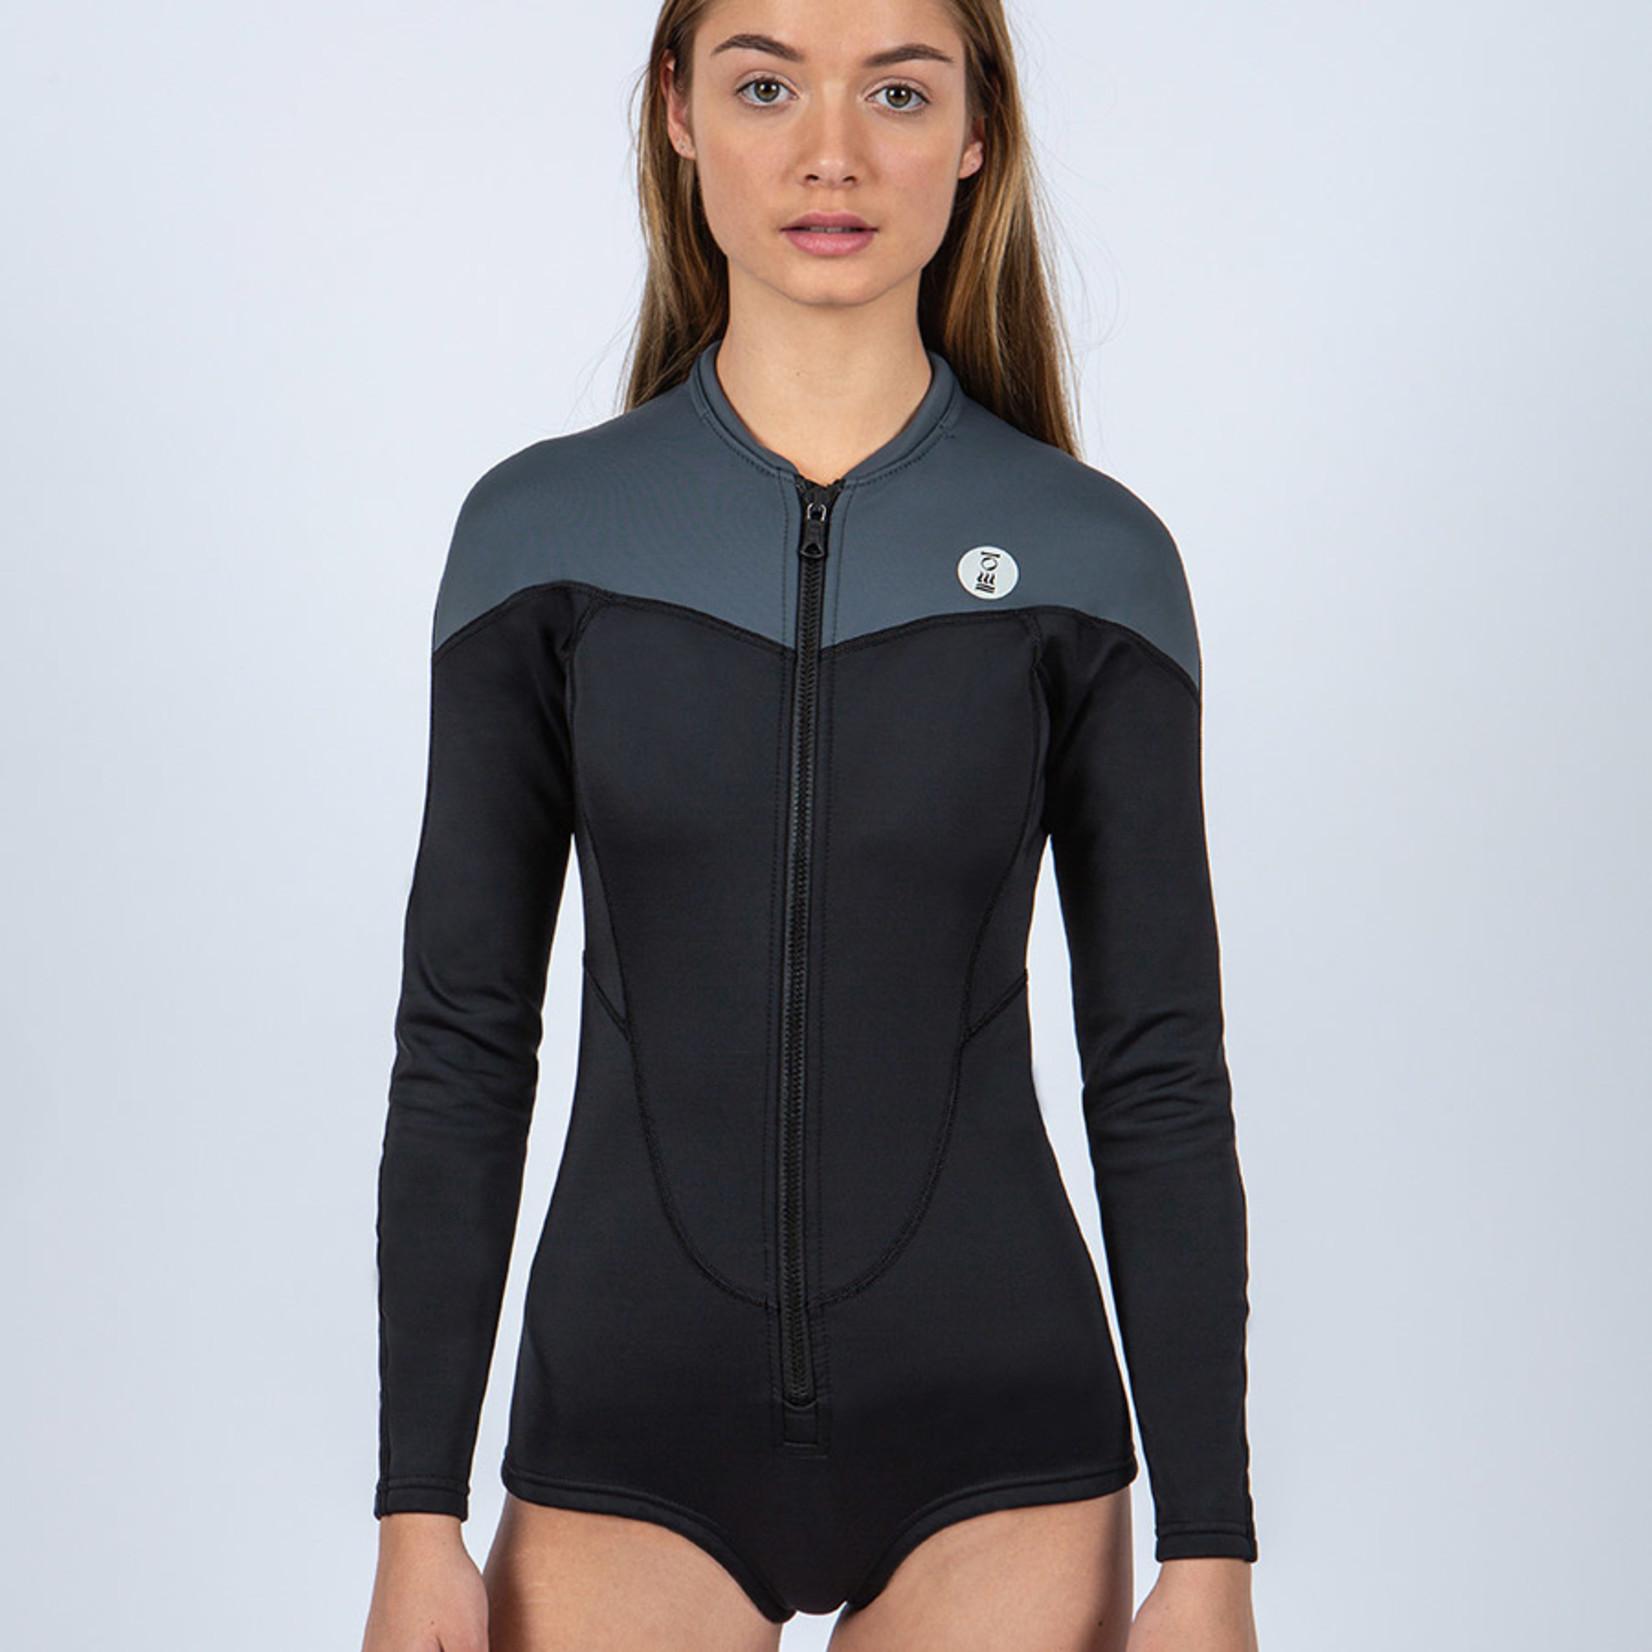 Fourth Element THERMOCLINE WOMENS LS SWIMSUIT - FRONT ZIP